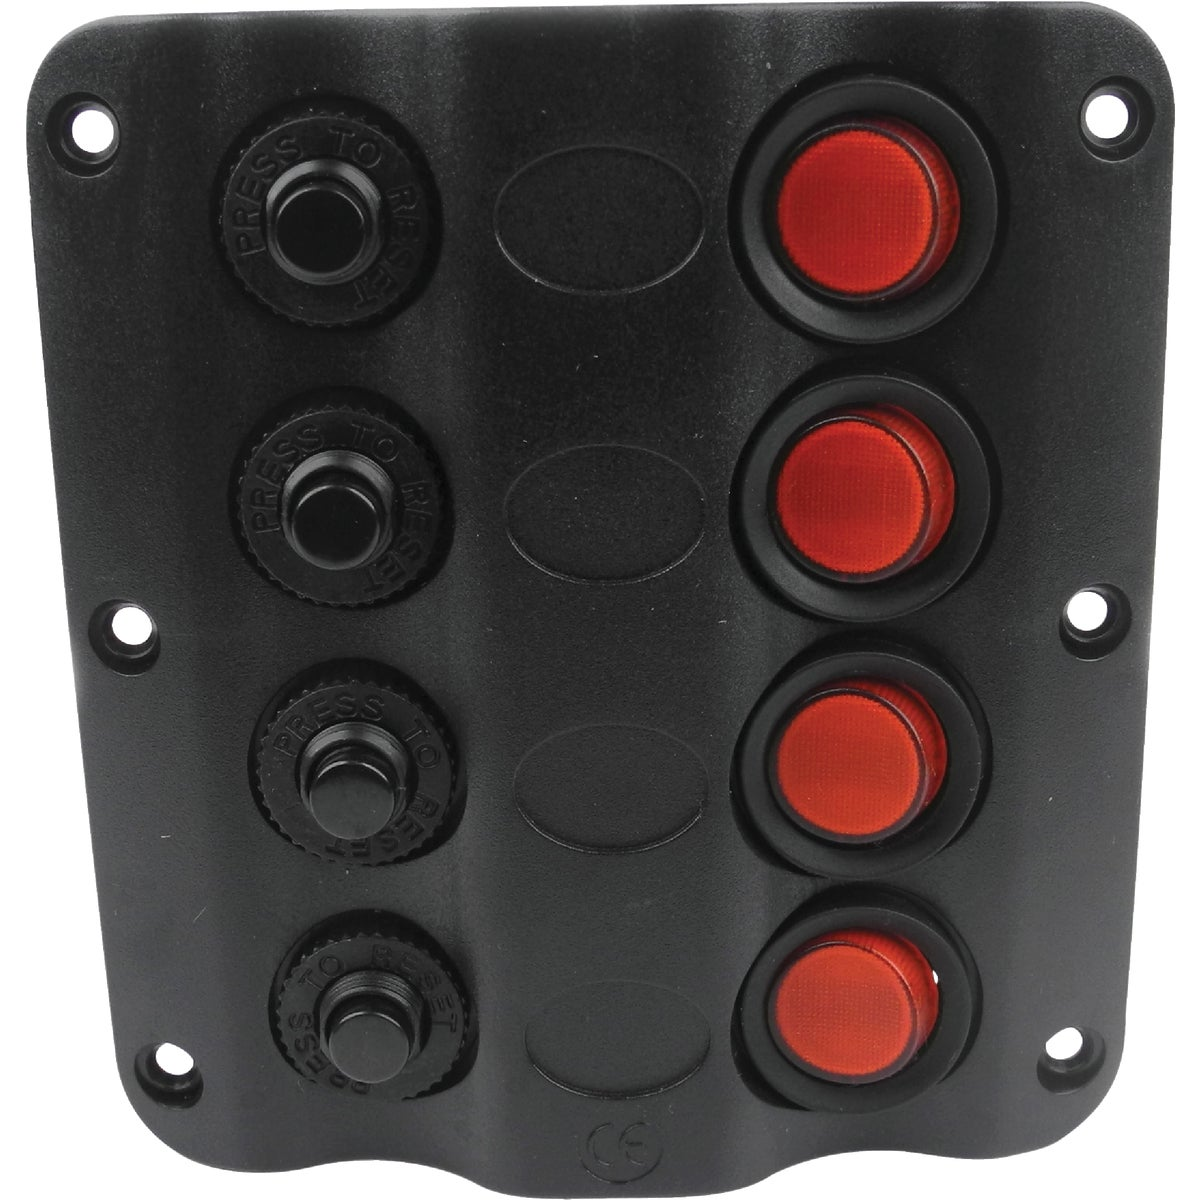 4-GANG LED SWITCH PANEL